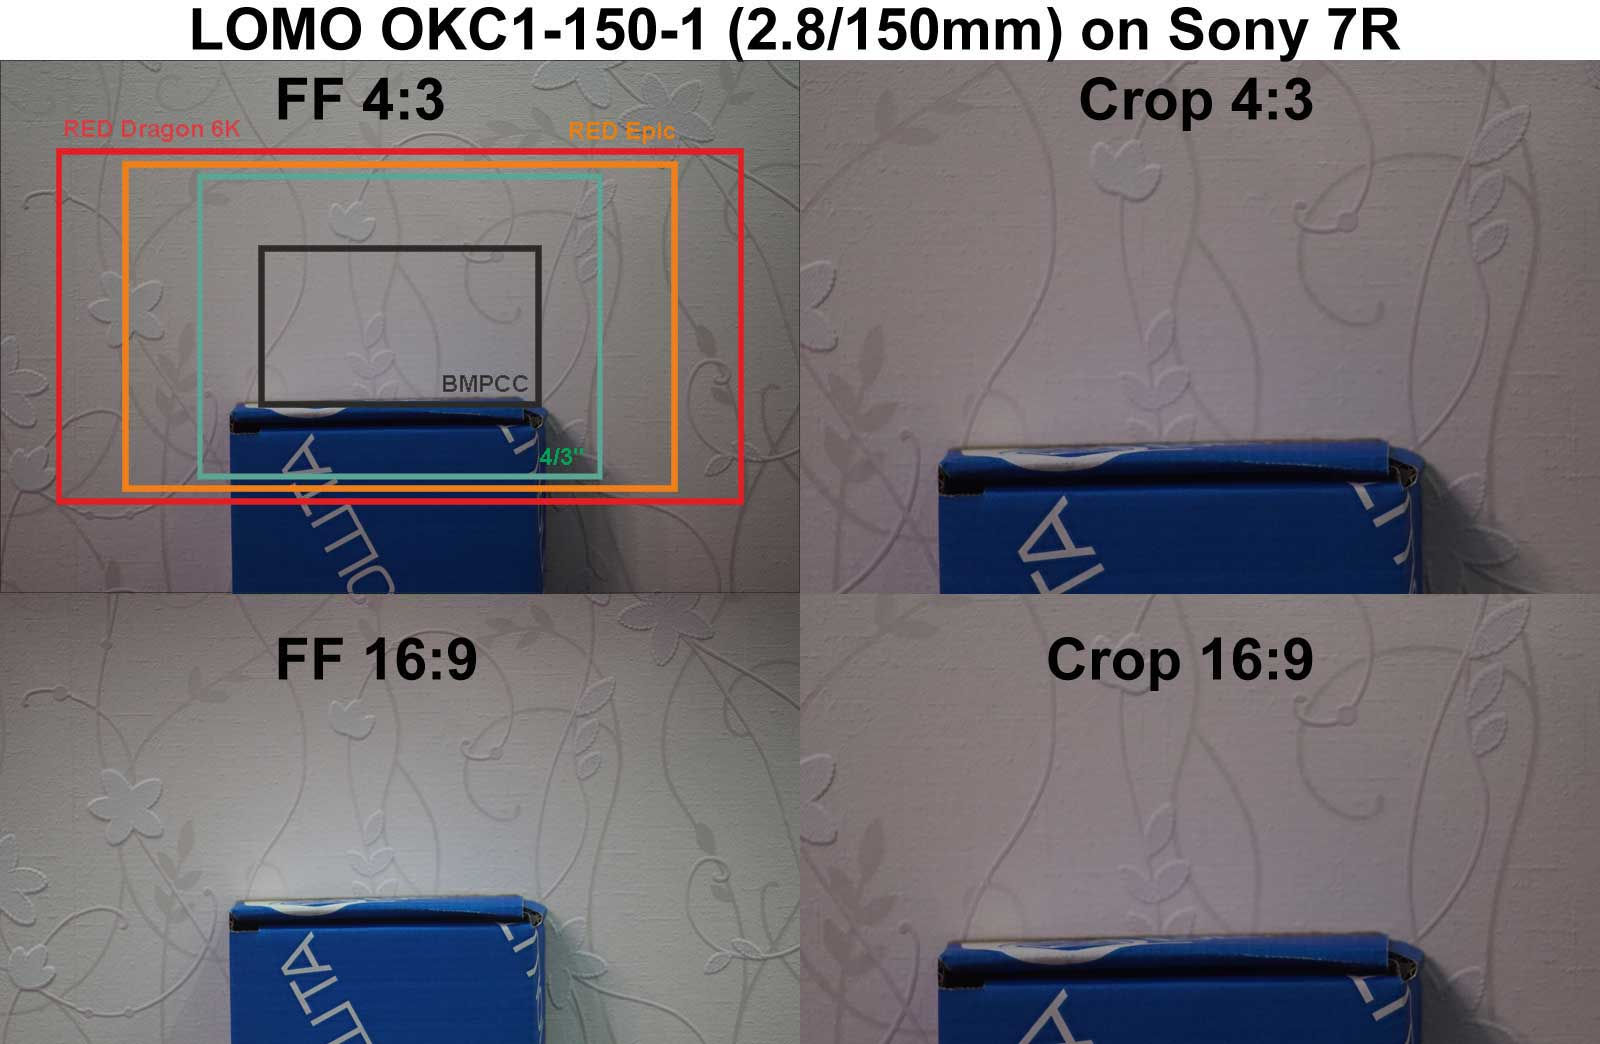 Coverage of LOMO OKC1-150-1 lens on Sony 7R camera